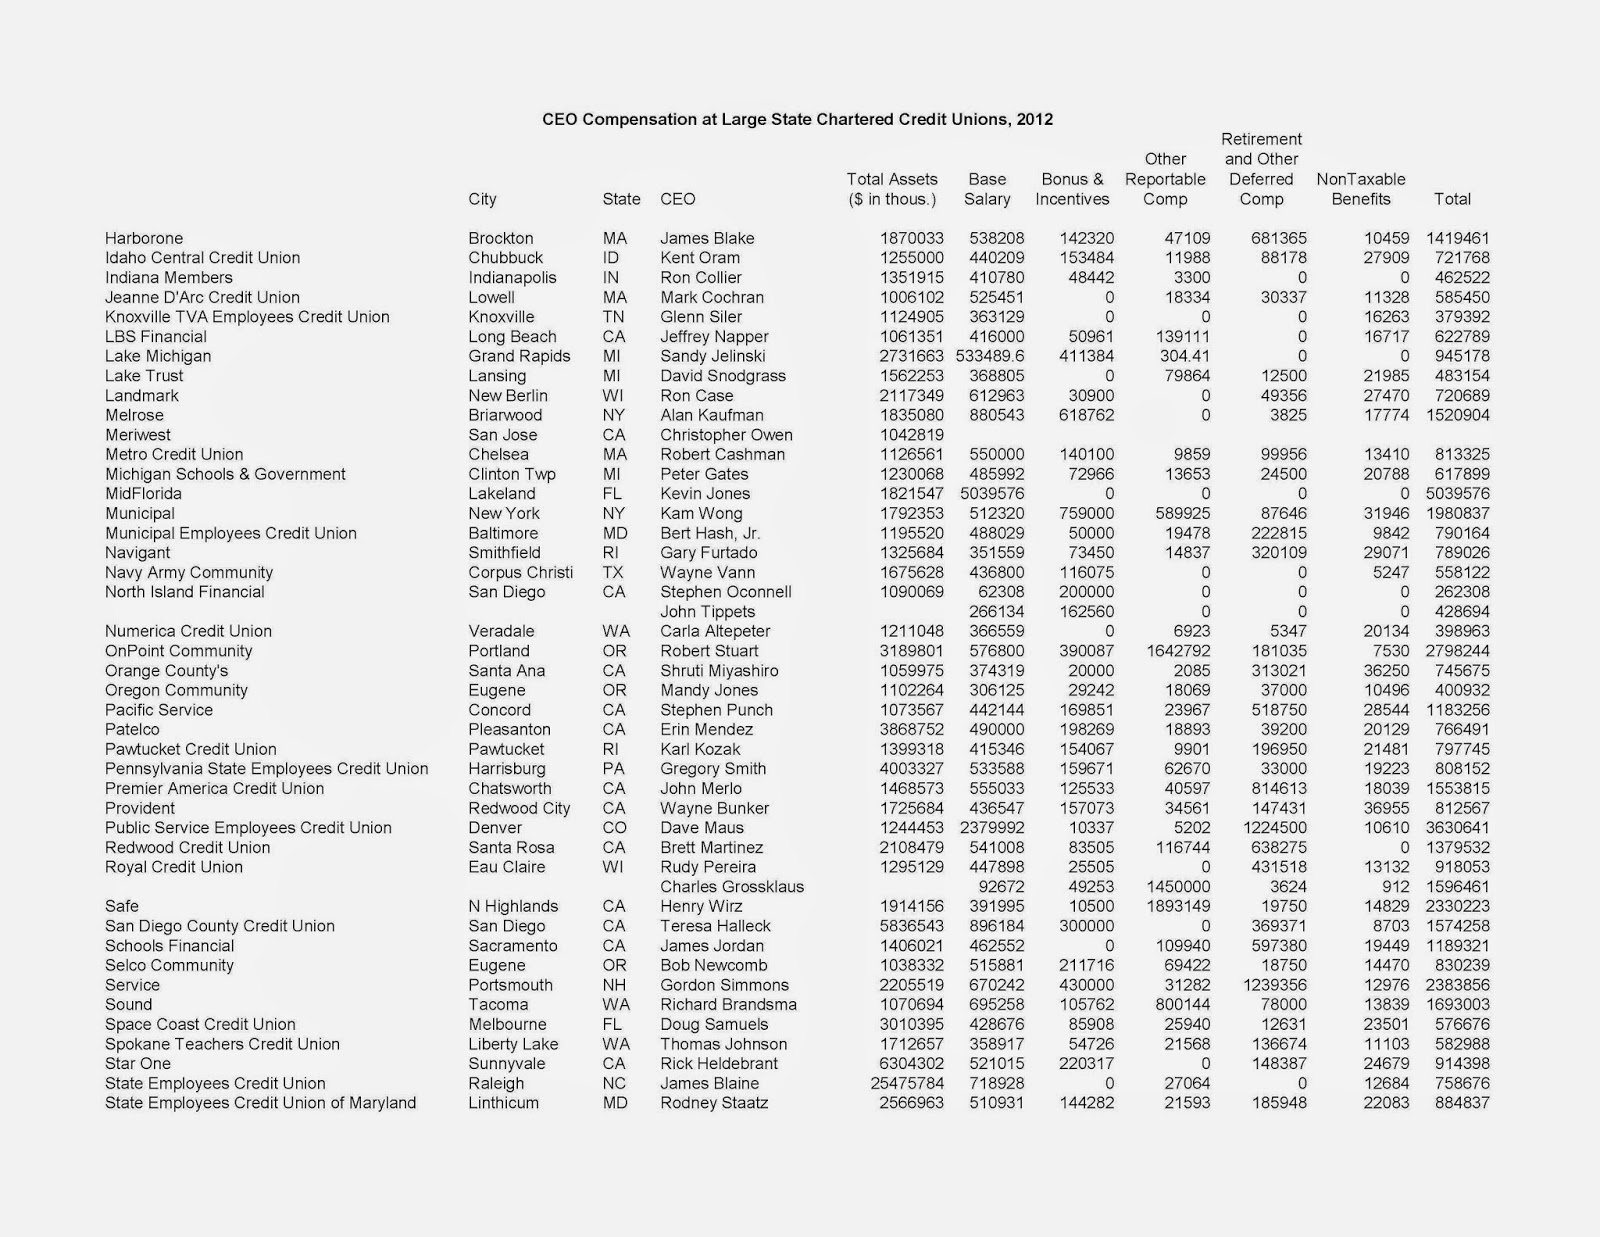 Knoxville tva credit union hours - The Mean And Median 2012 Retirement And Other Deferred Compensation Were 161 Thousand And 39 2 Thousand Respectively